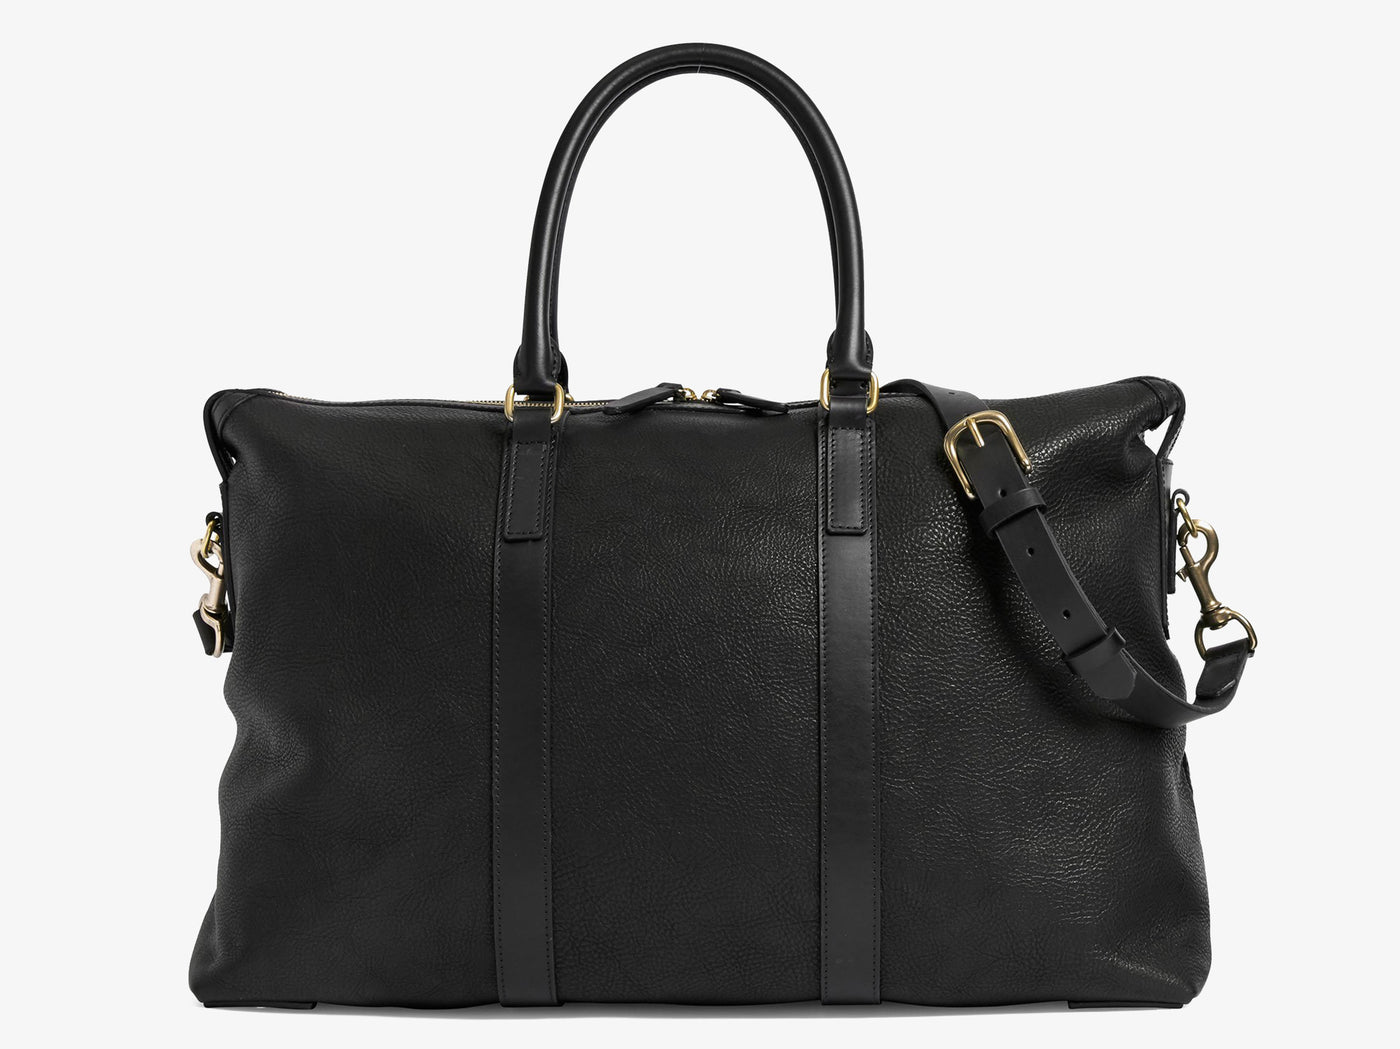 Mission, Leather - Black/Black